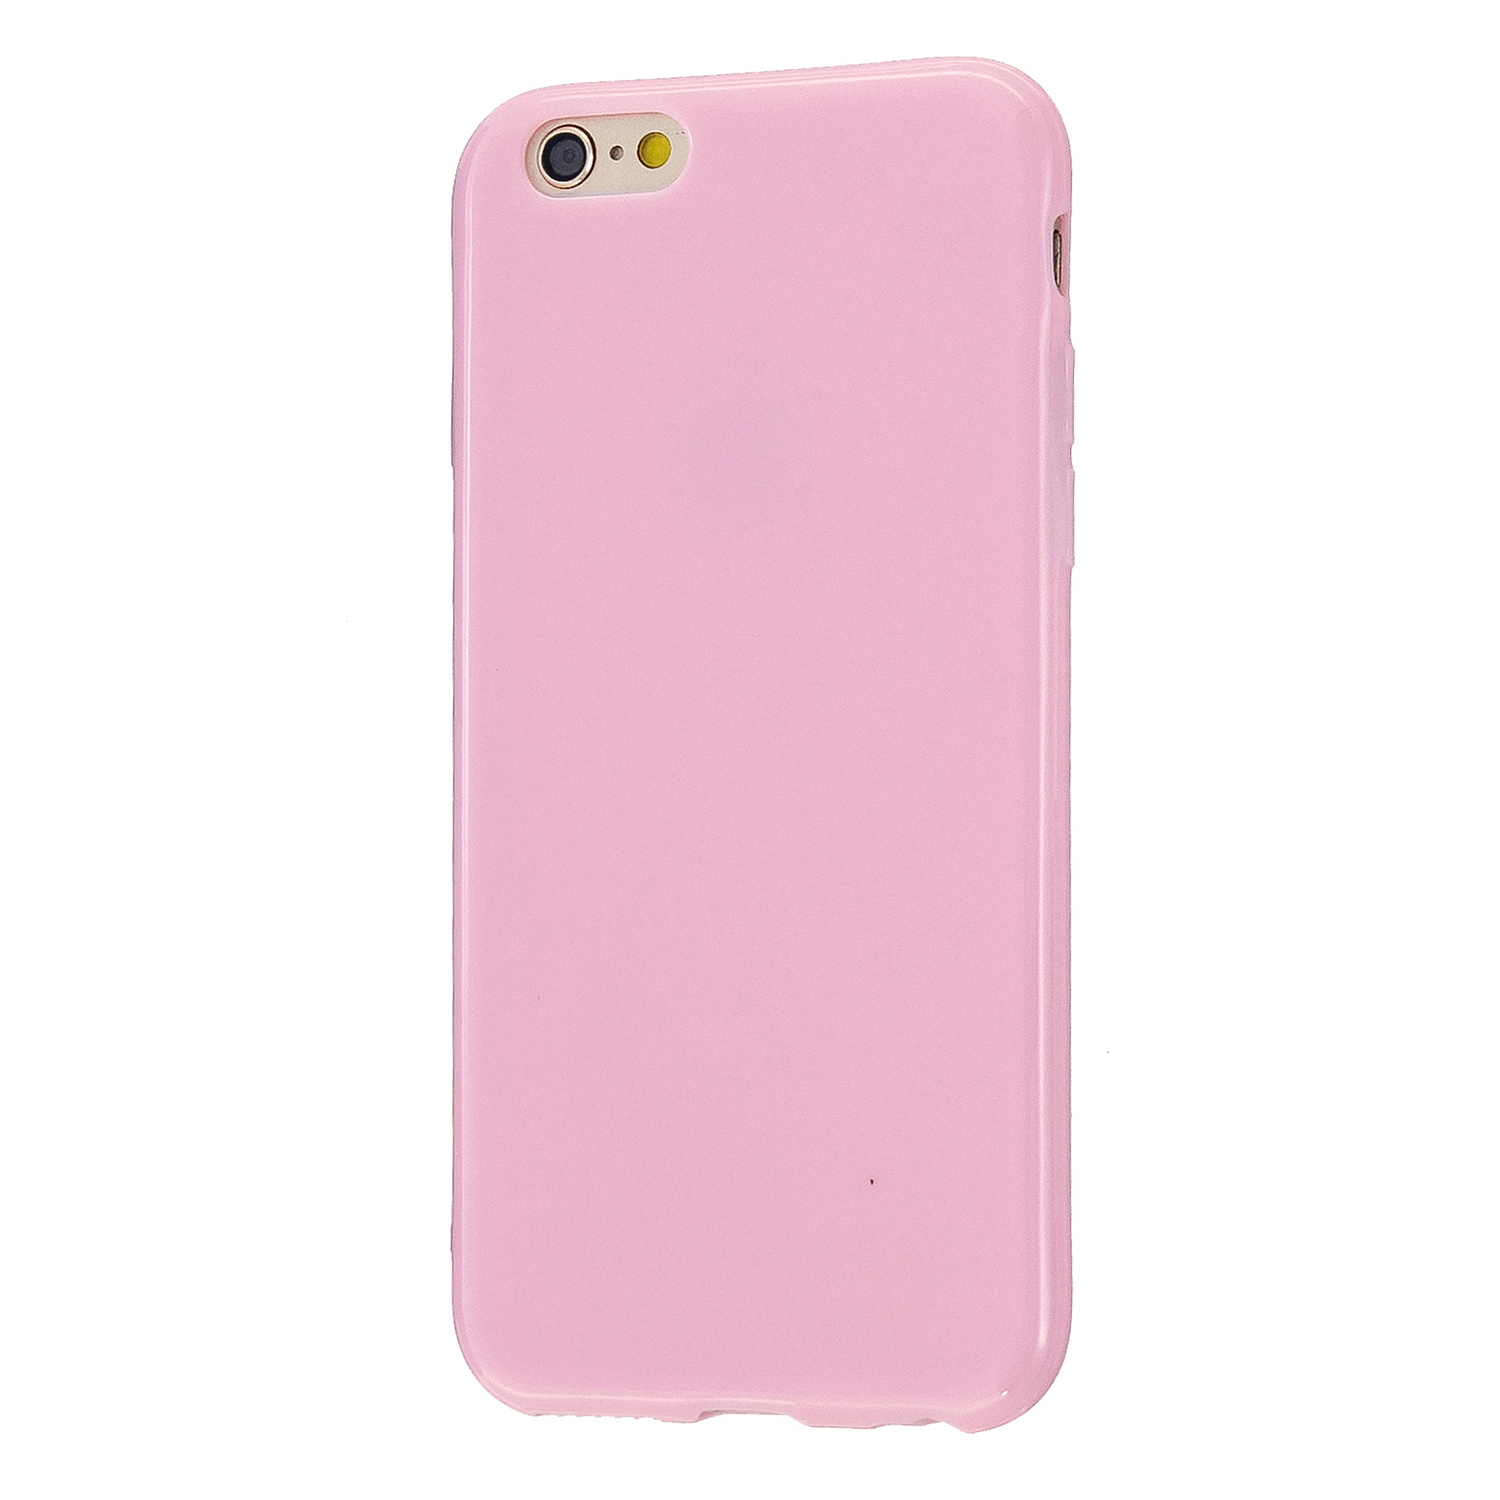 For iPhone 5/5S/SE/6/6S/6 Plus/6S Plus/7/8/7 Plus/8 Plus Cellphone Cover Soft TPU Bumper Protector Phone Shell Rose pink